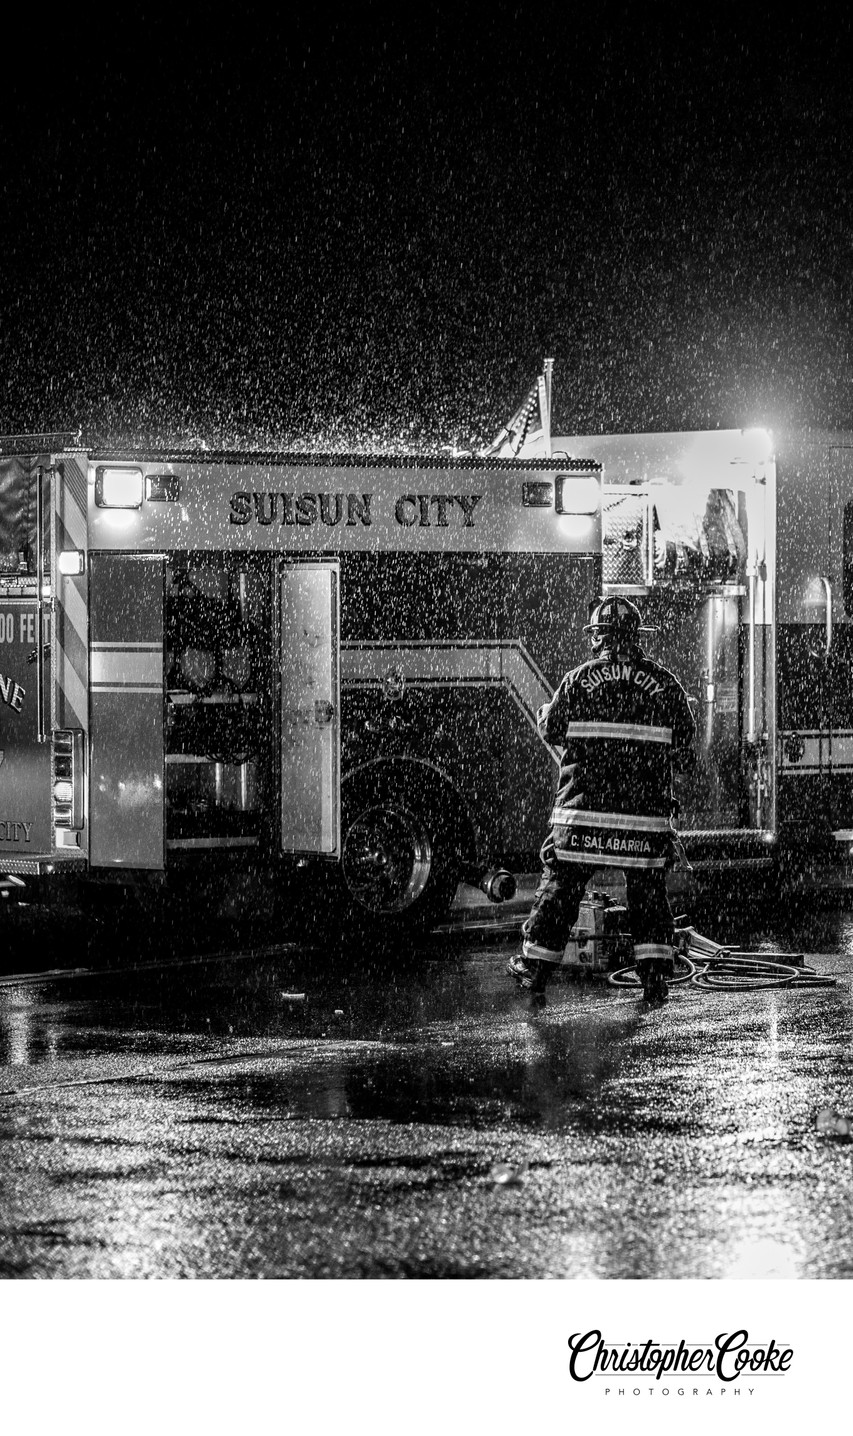 Suisun City Firefighter in the rain